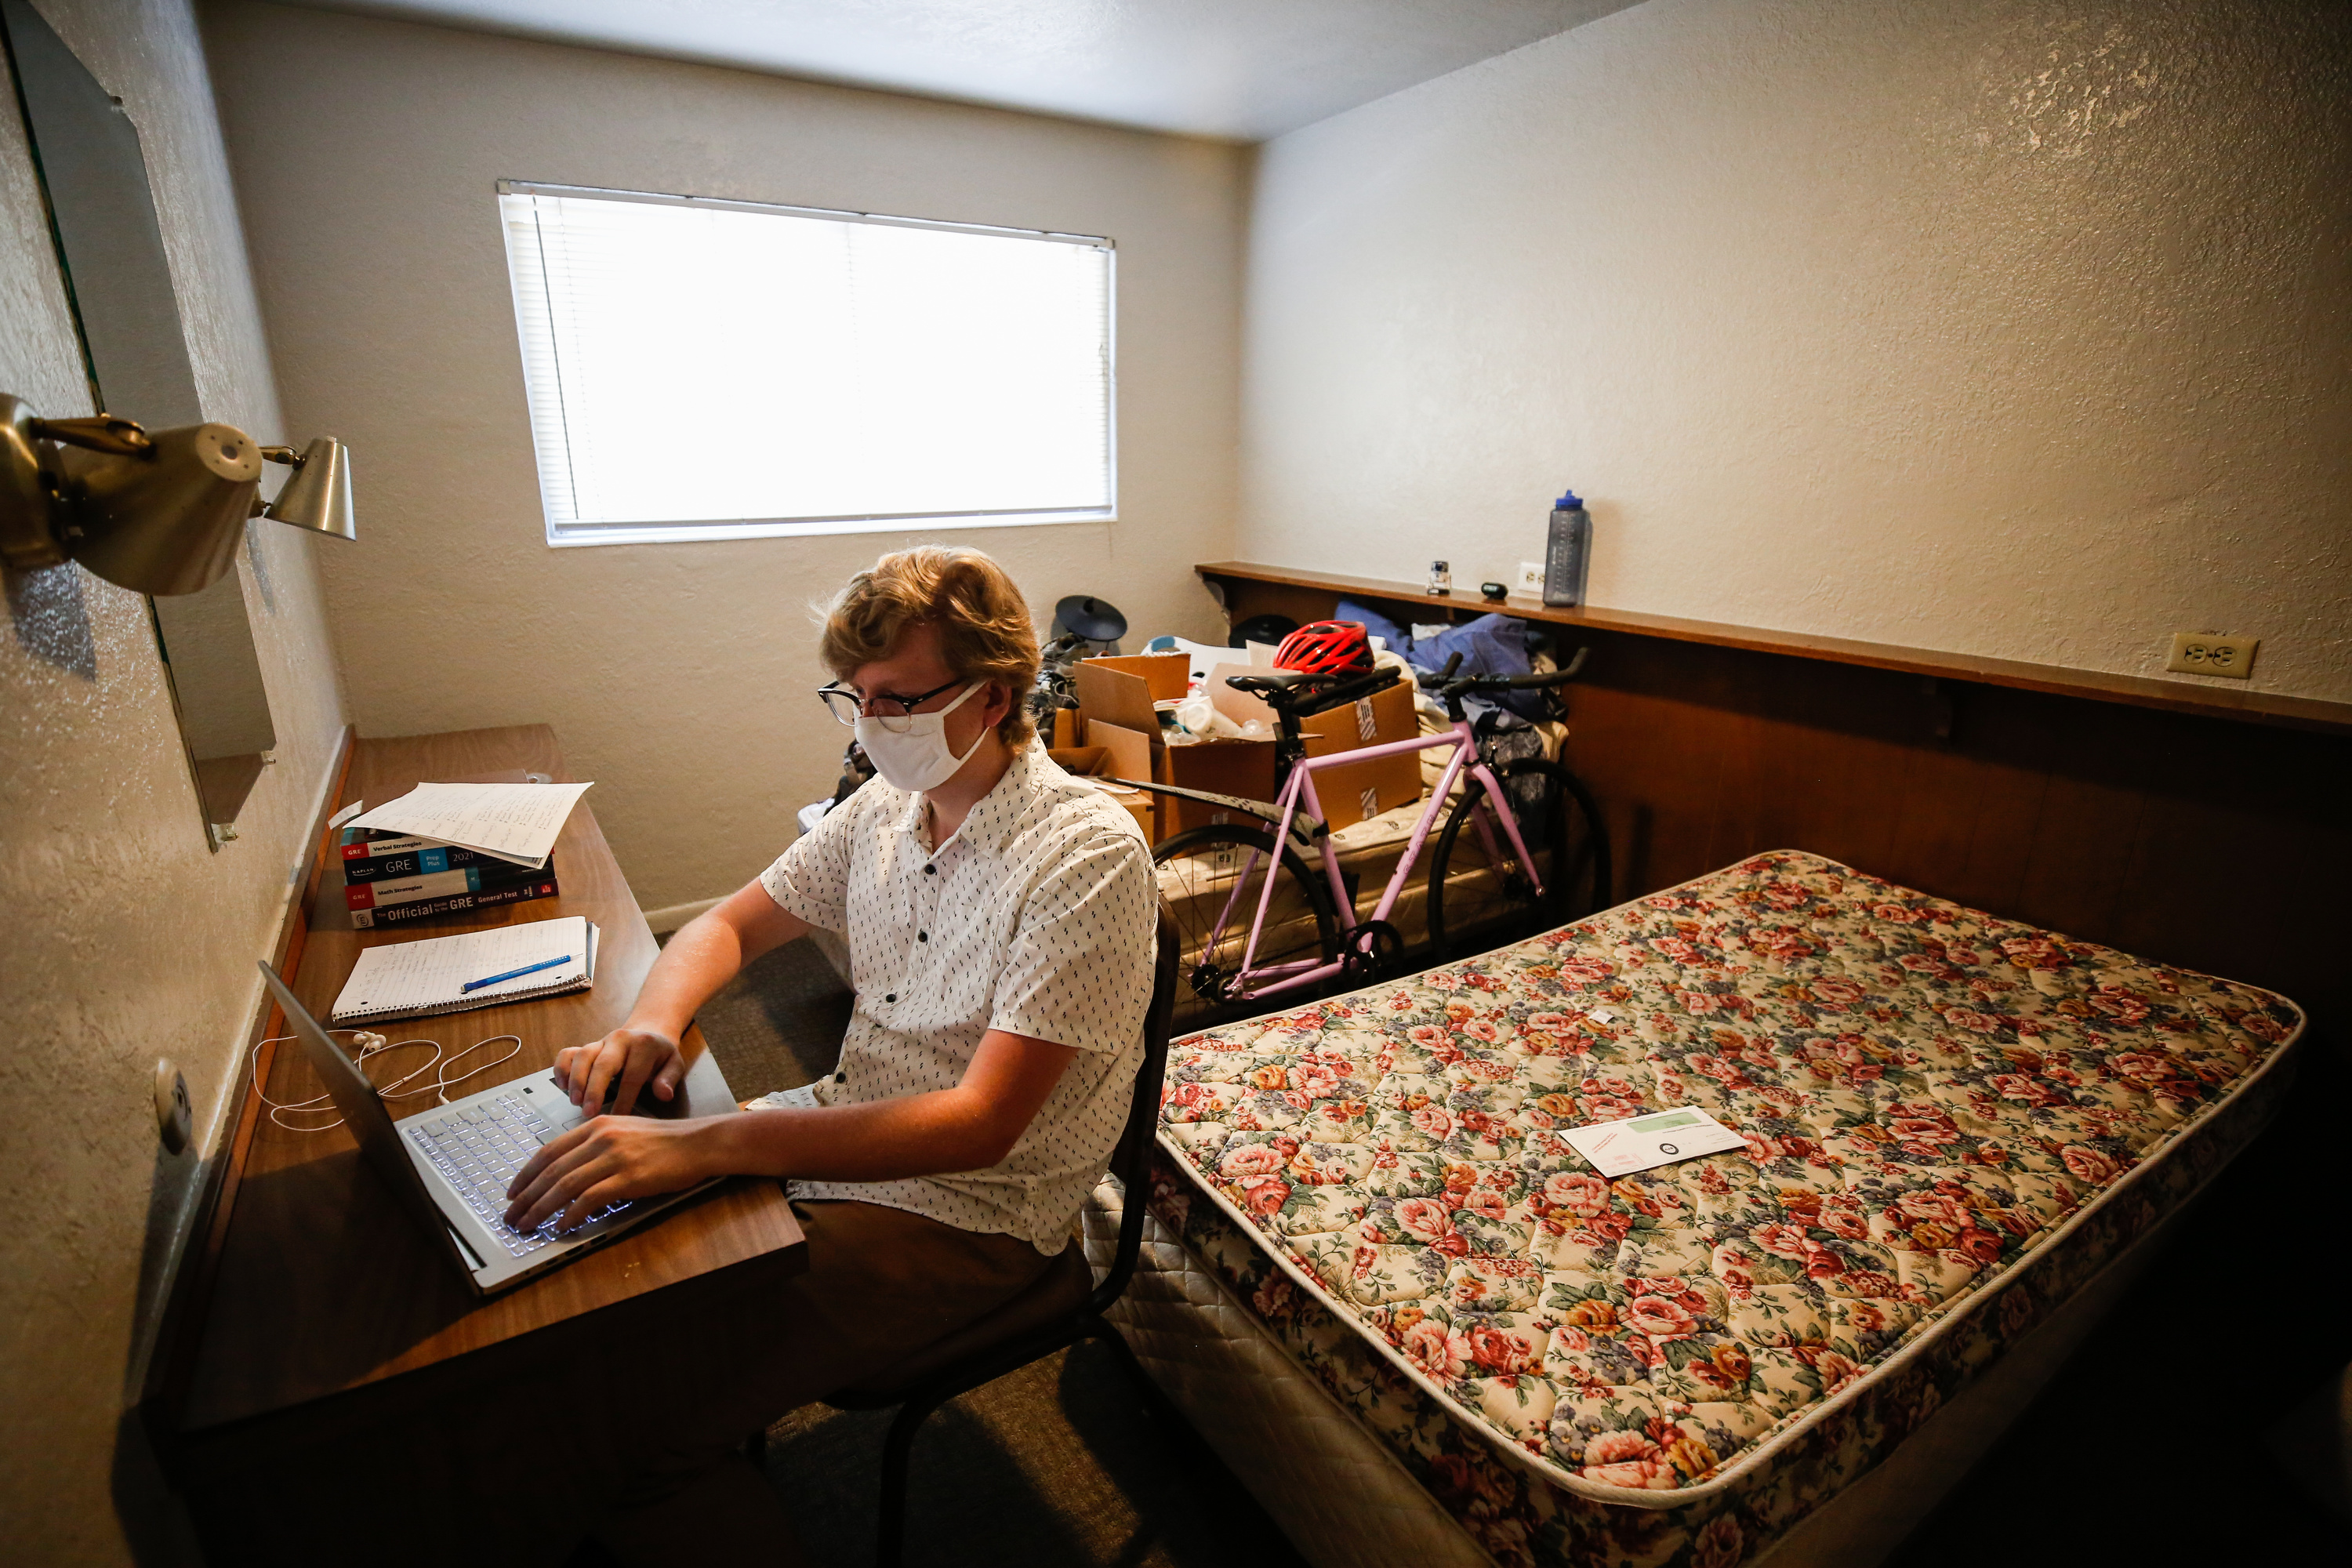 Jordan Hamann studies in an empty bedroom at his apartment in Provo on Monday, July 20, 2020.